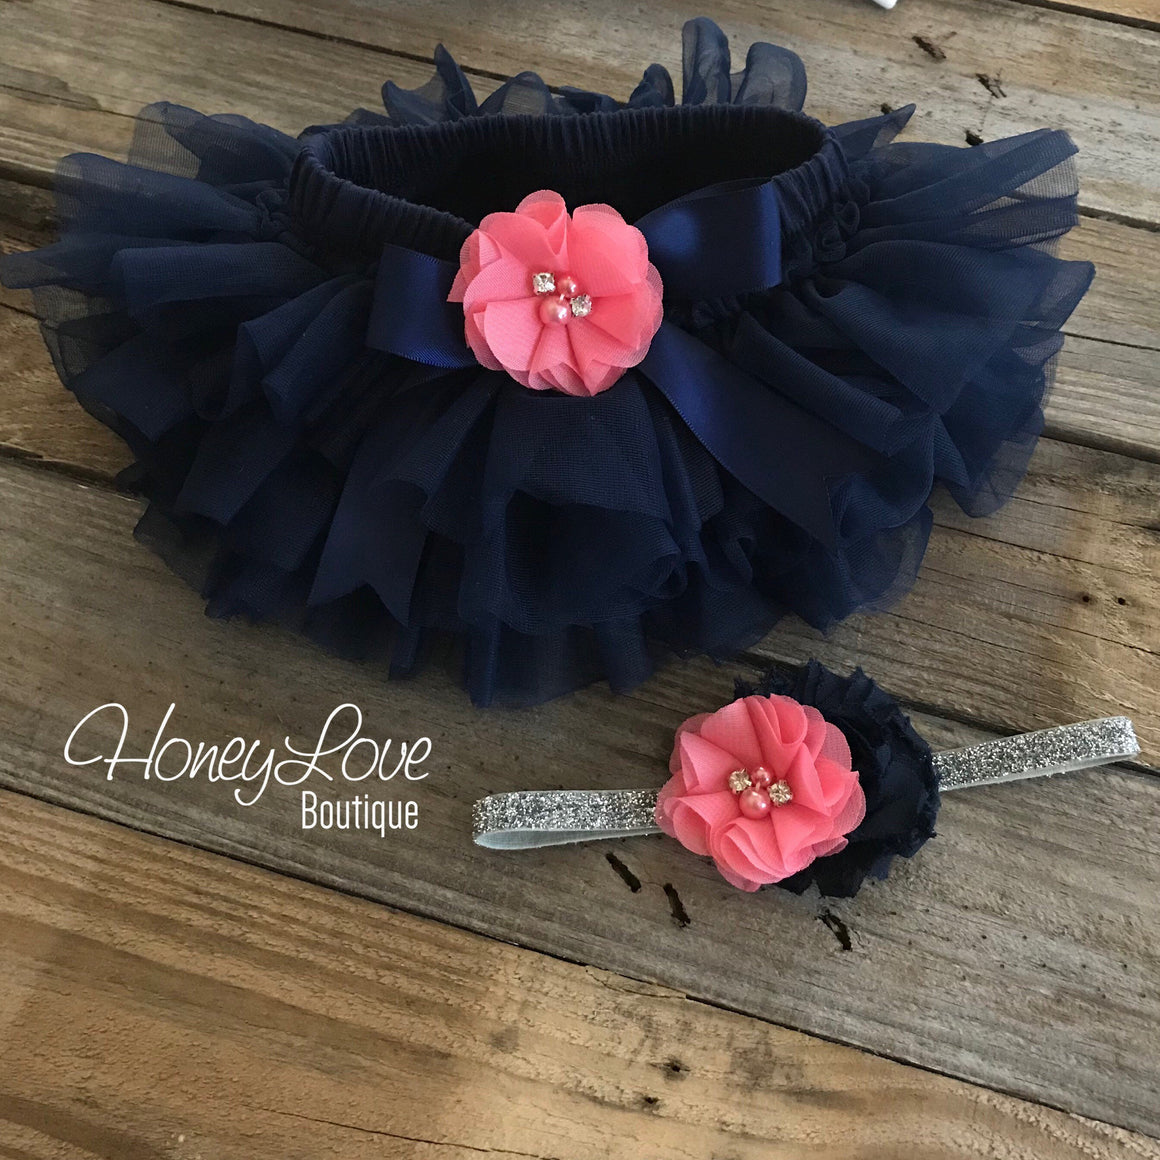 PERSONALIZED Name Outfit - Navy Blue and Silver Glitter - Coral Pink rhinestone/pearl flower embellished tutu skirt bloomers - HoneyLoveBoutique